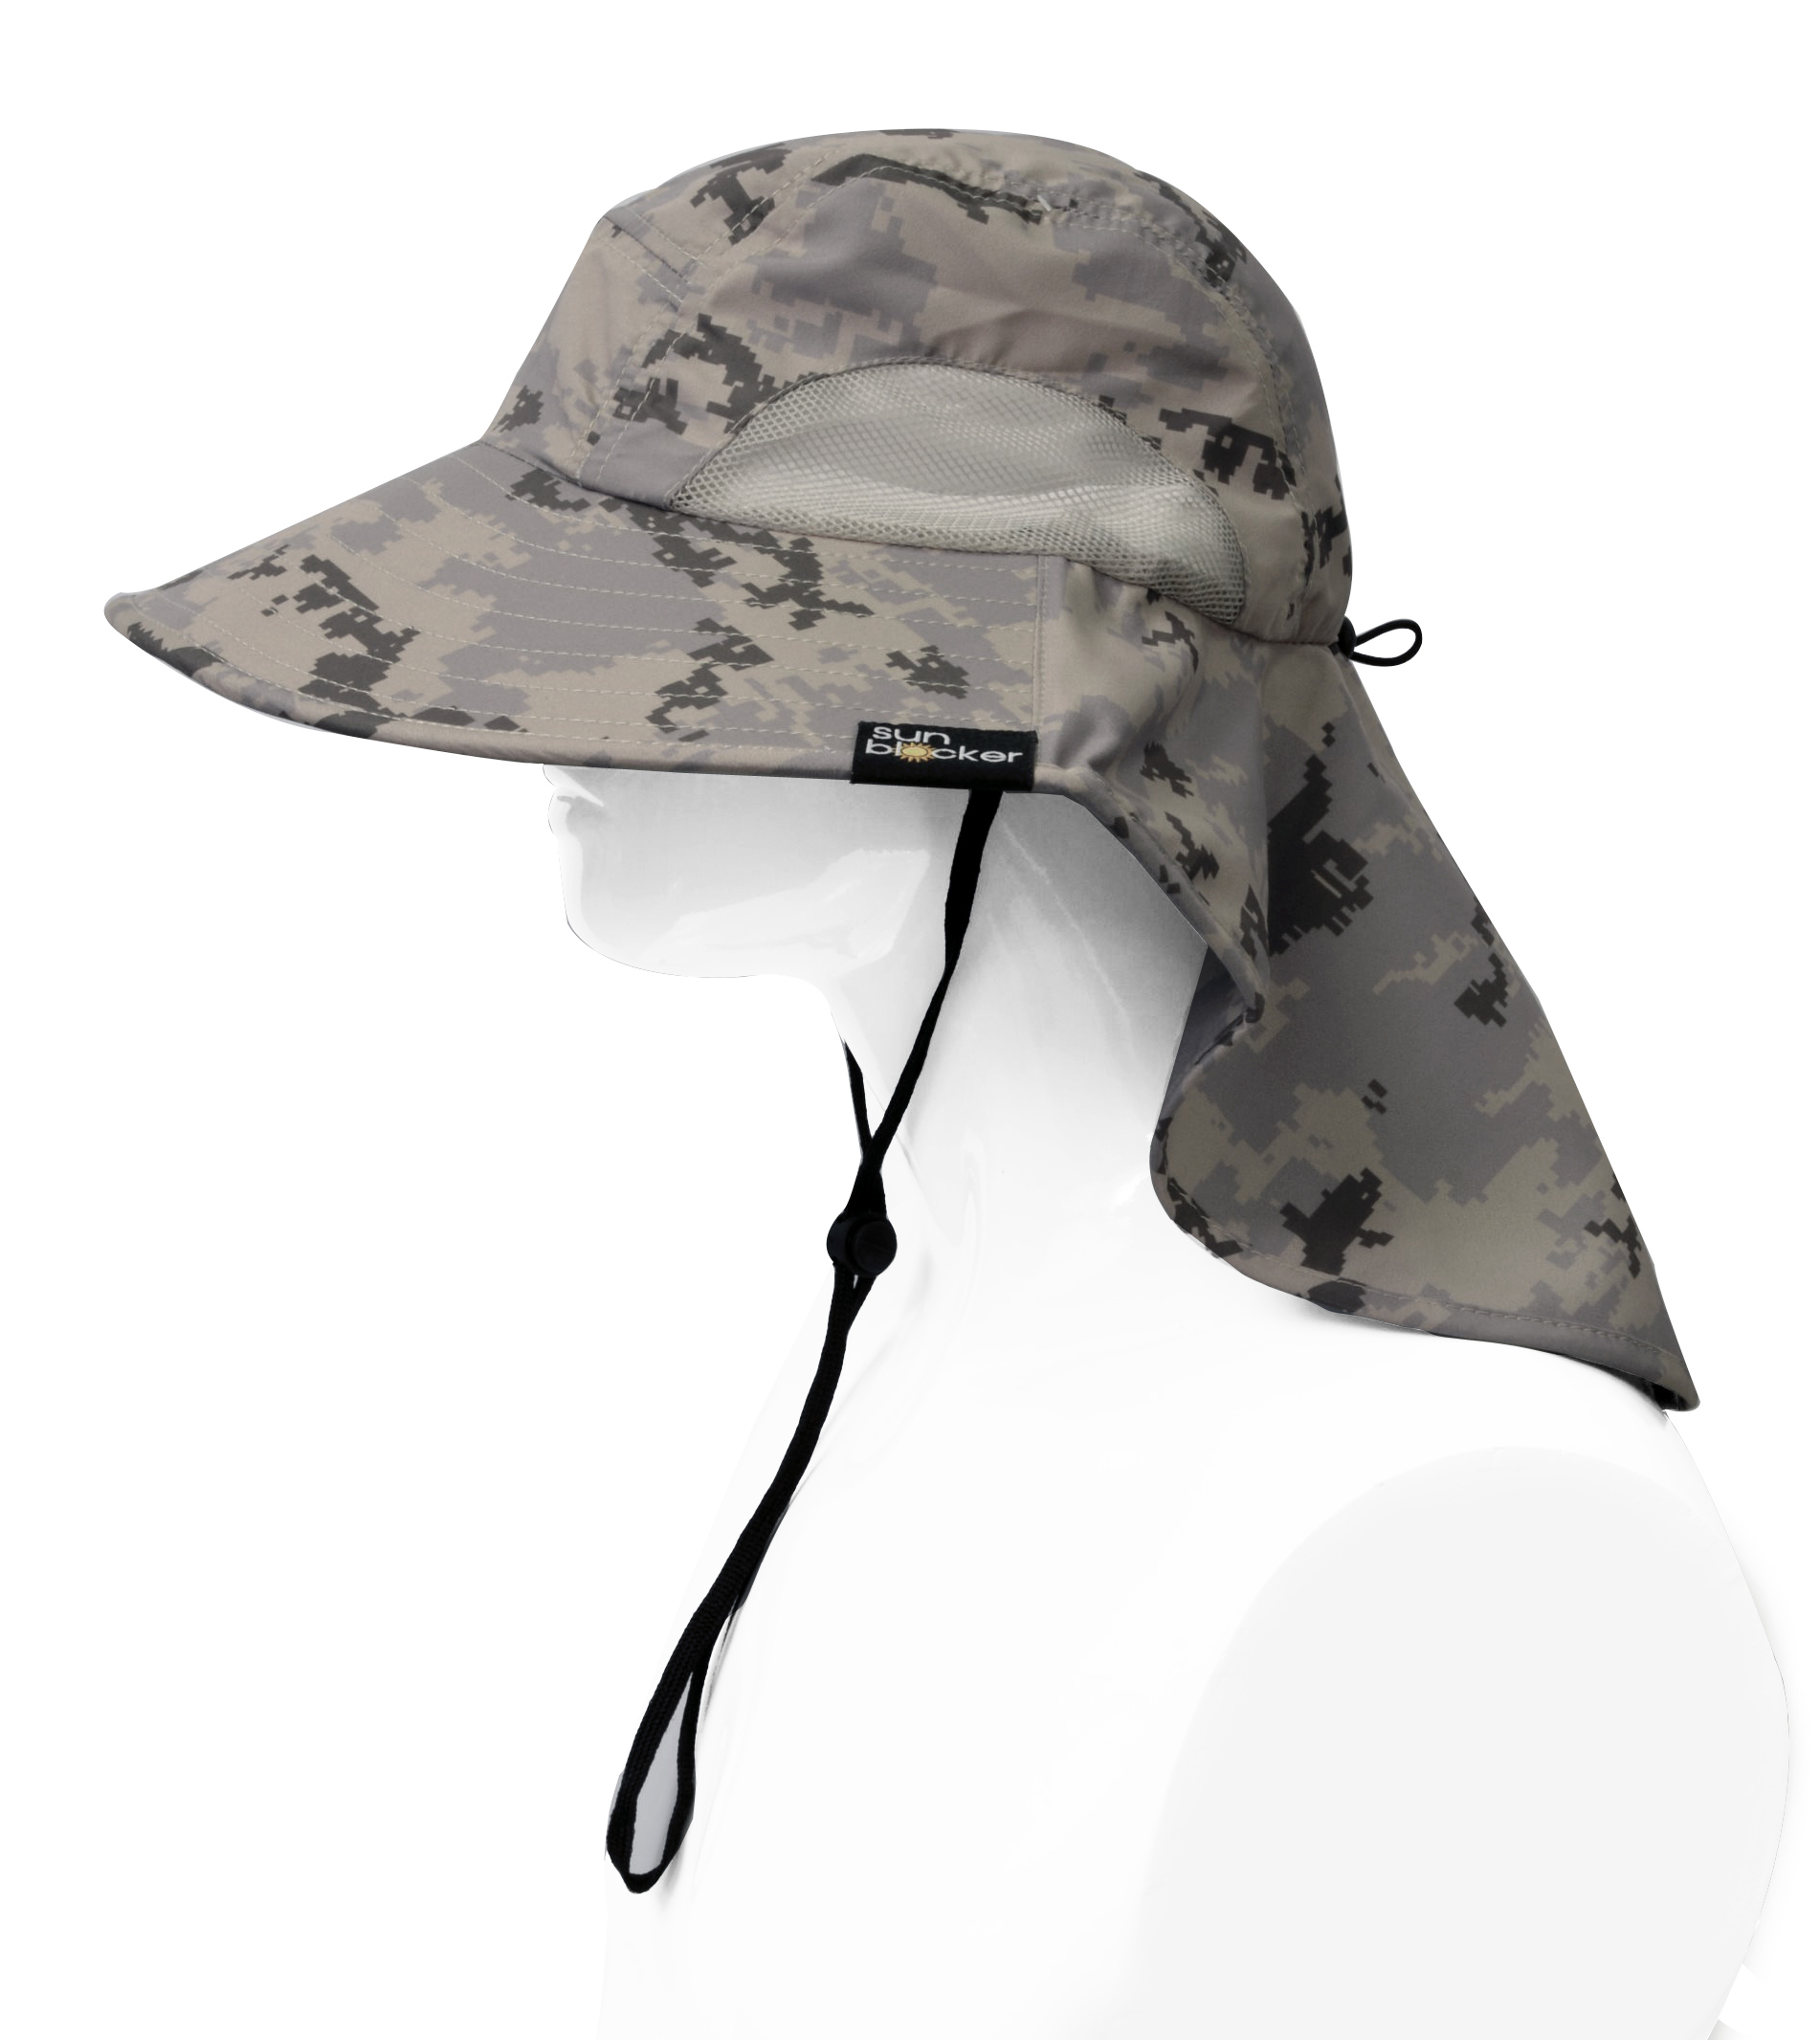 Sun-Hat-Camo-Cap-w-Wide-Brim-Ear-amp-Neck-UV-Protection-for-Fishing-Camping-Hiking thumbnail 4